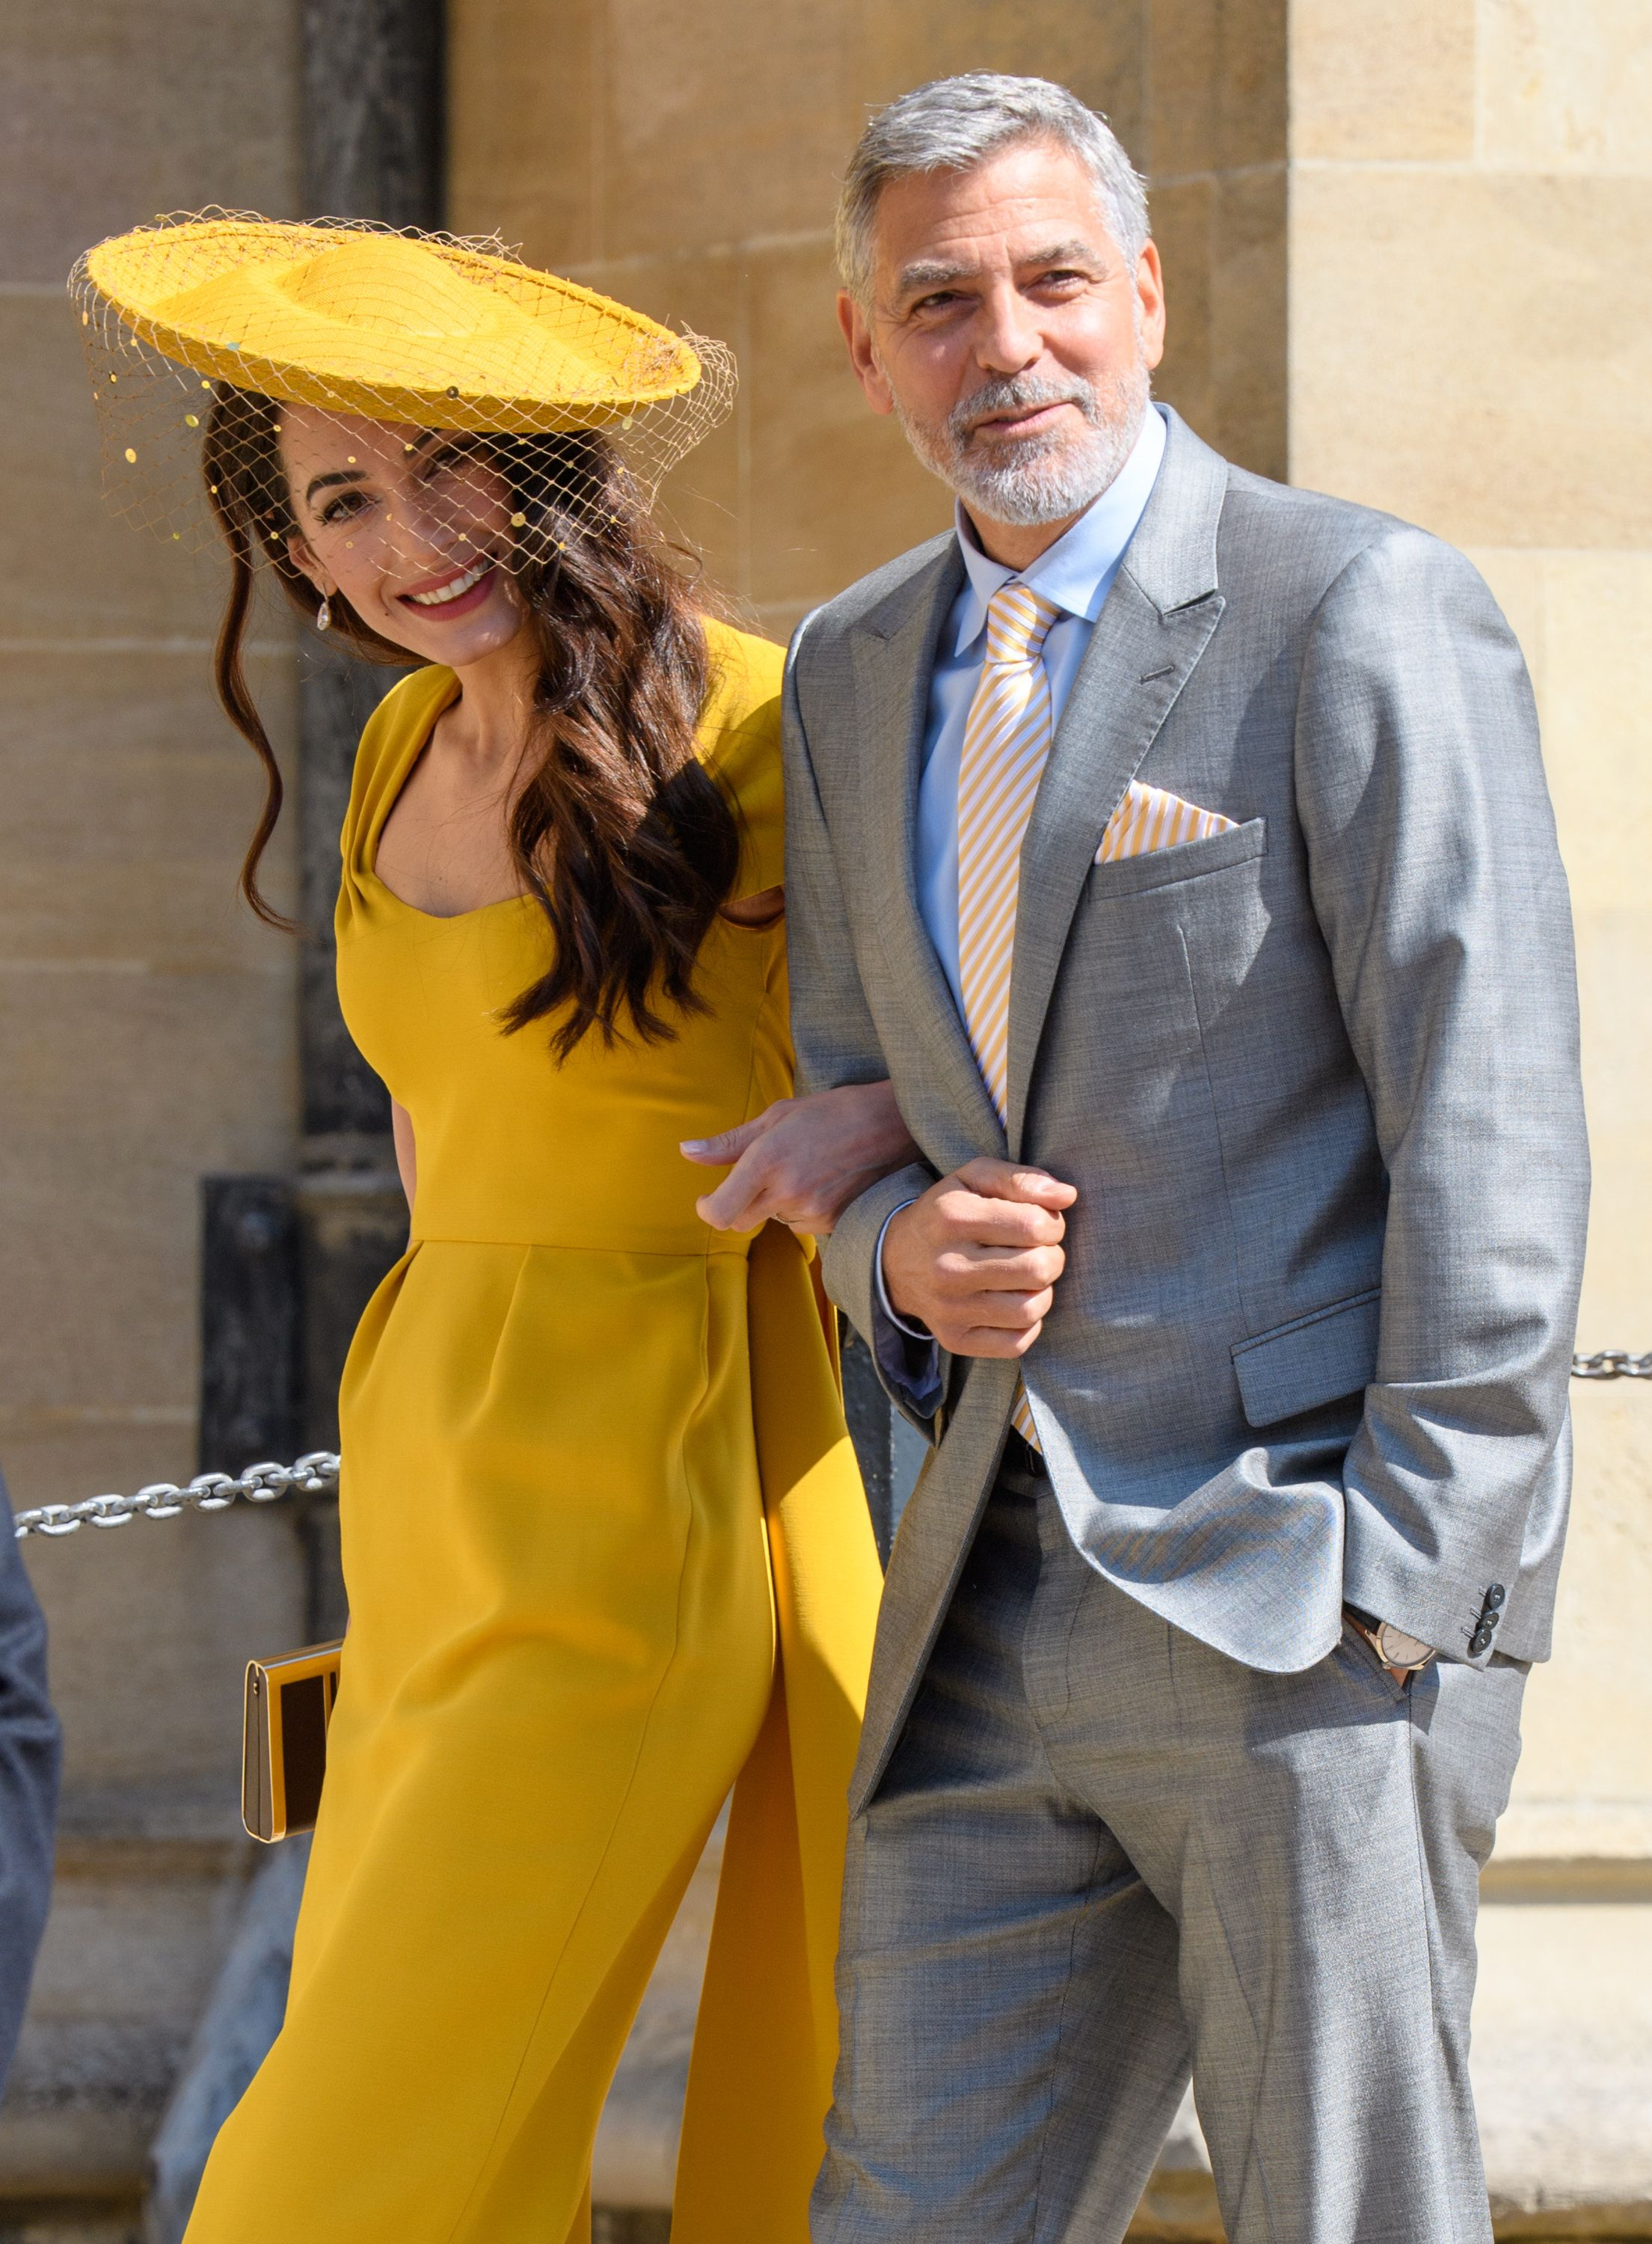 Will George and Amal attend the upcoming royal wedding?